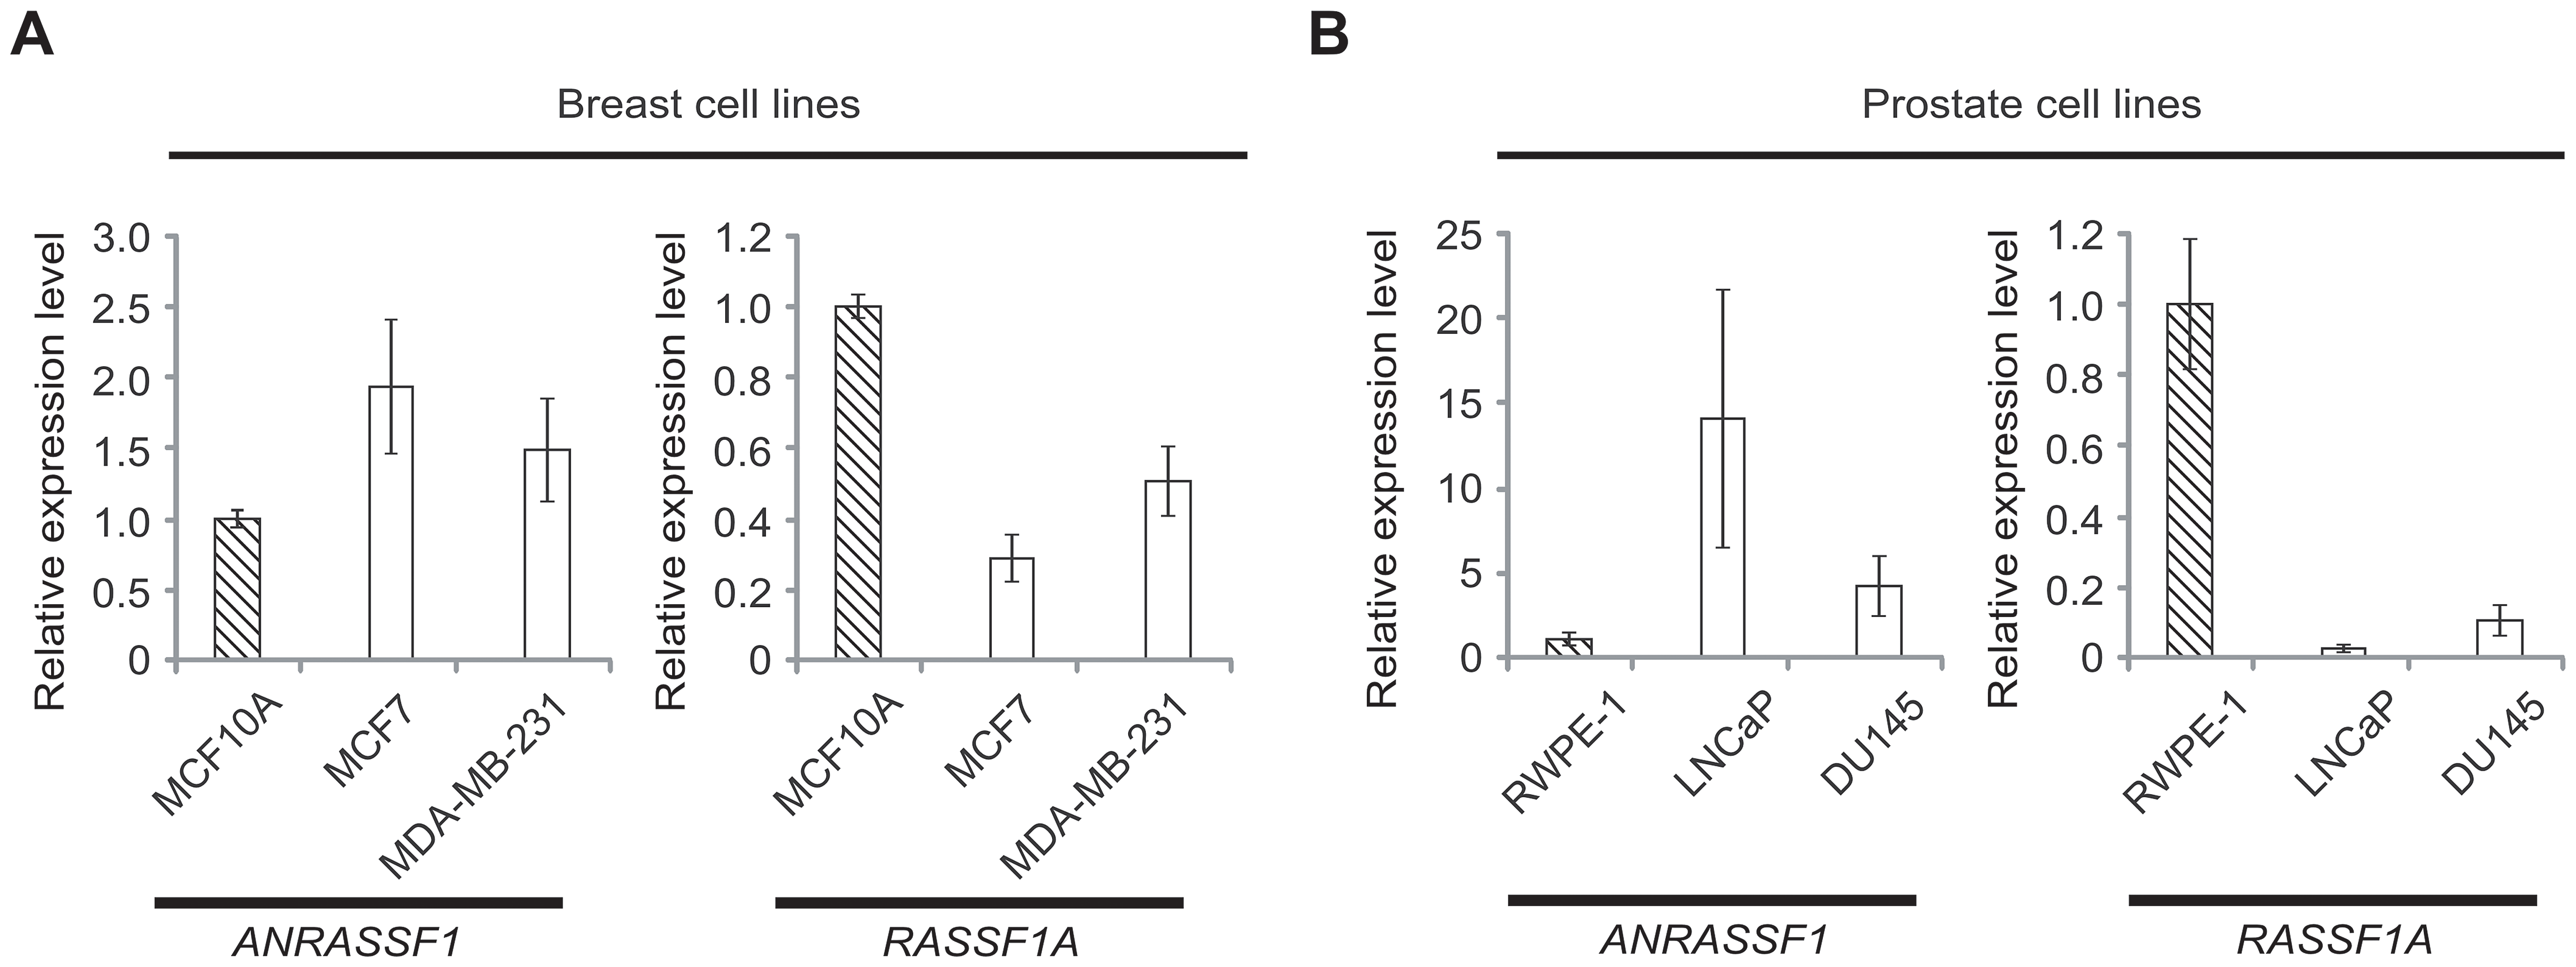 Inverse correlation between <i>ANRASSF1</i> and <i>RASSF1A</i> expression in non-tumor and tumor cell lines.